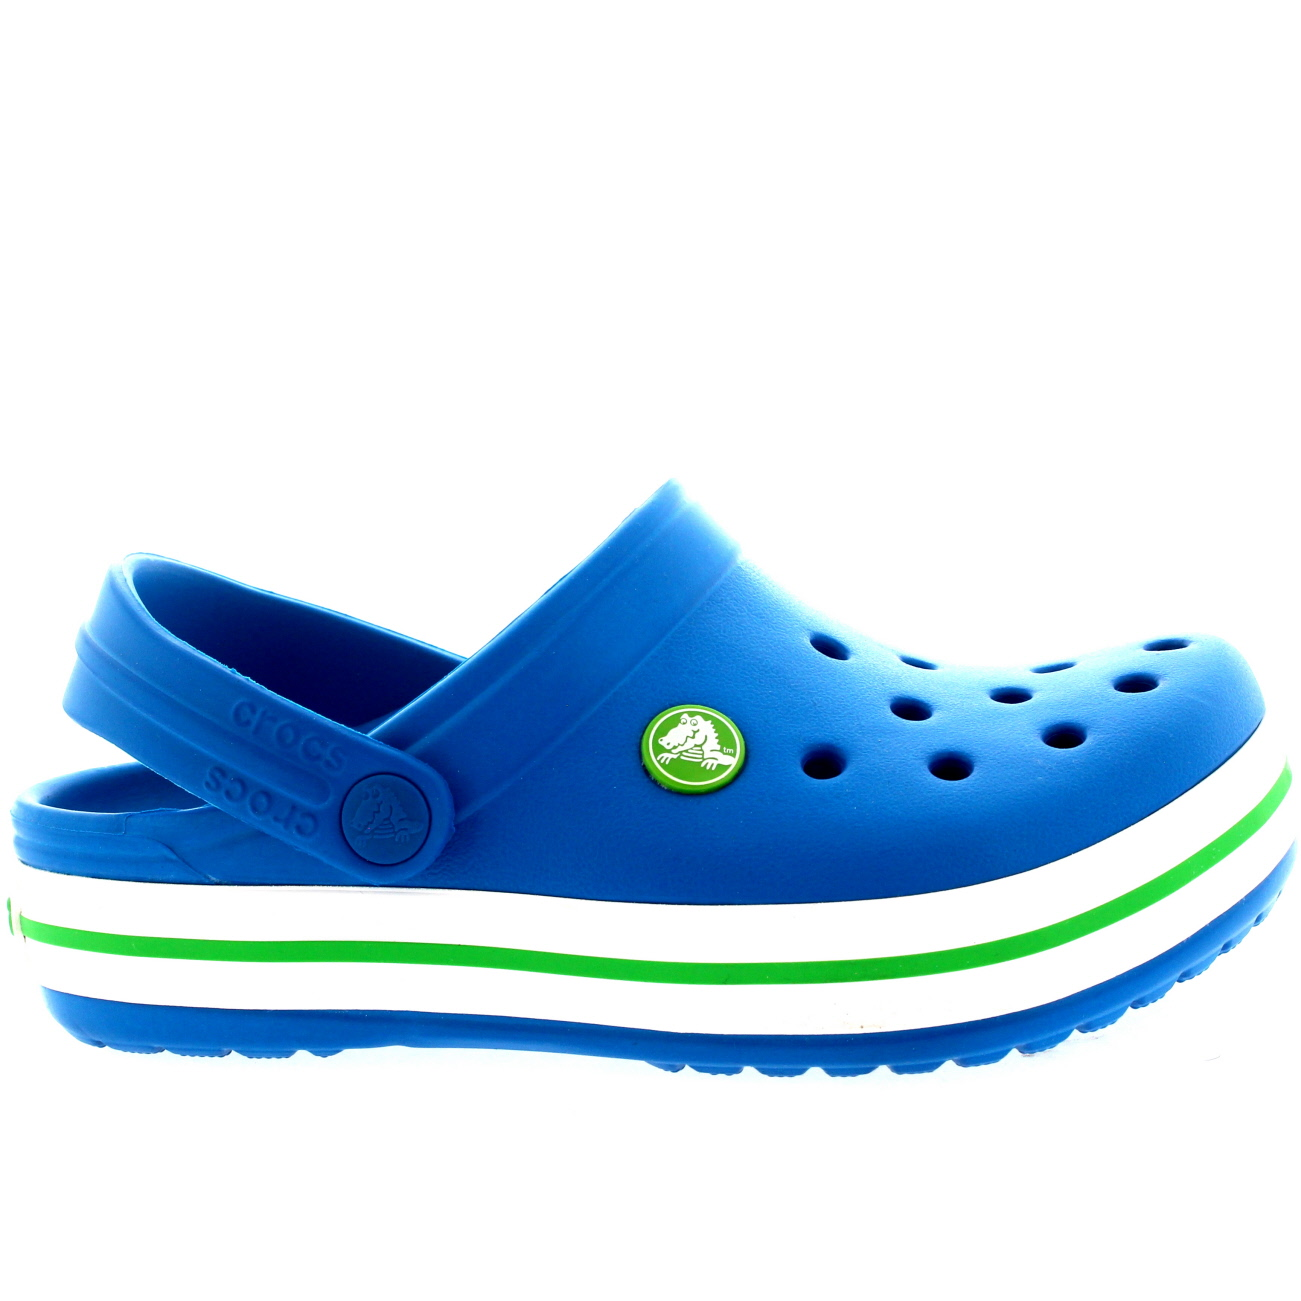 2a557e8b347d Unisex Kids Crocs Crocband Casual Mules Shoes Holiday Clogs Sandals All  Sizes